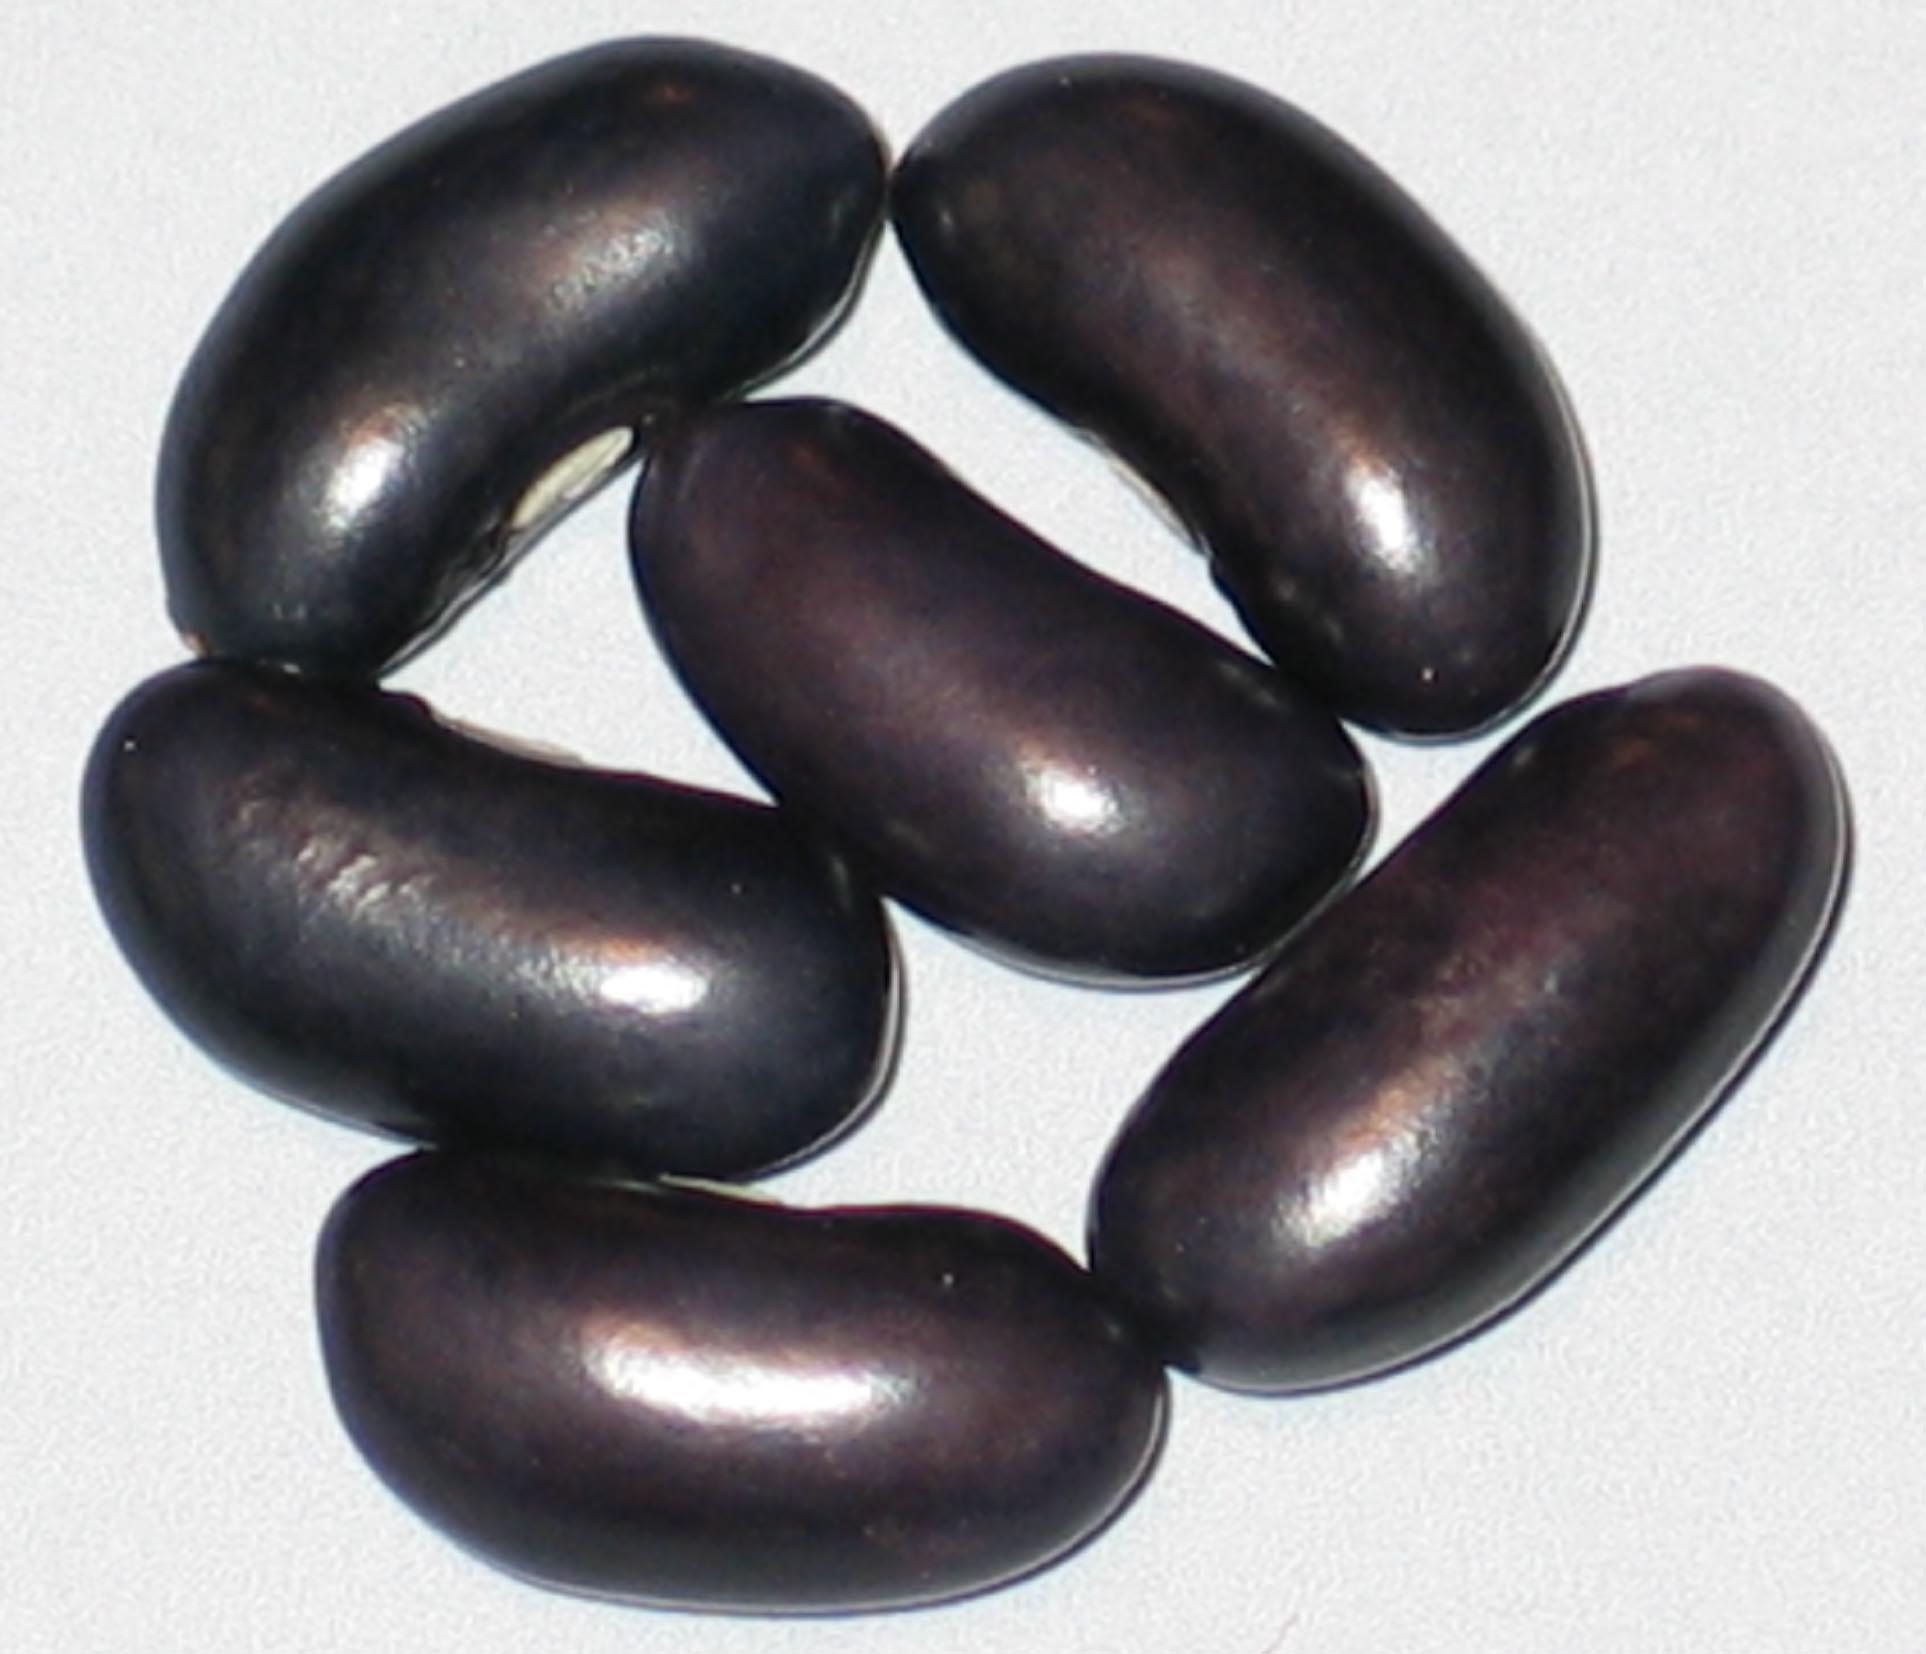 image of Anderson's Wonder beans